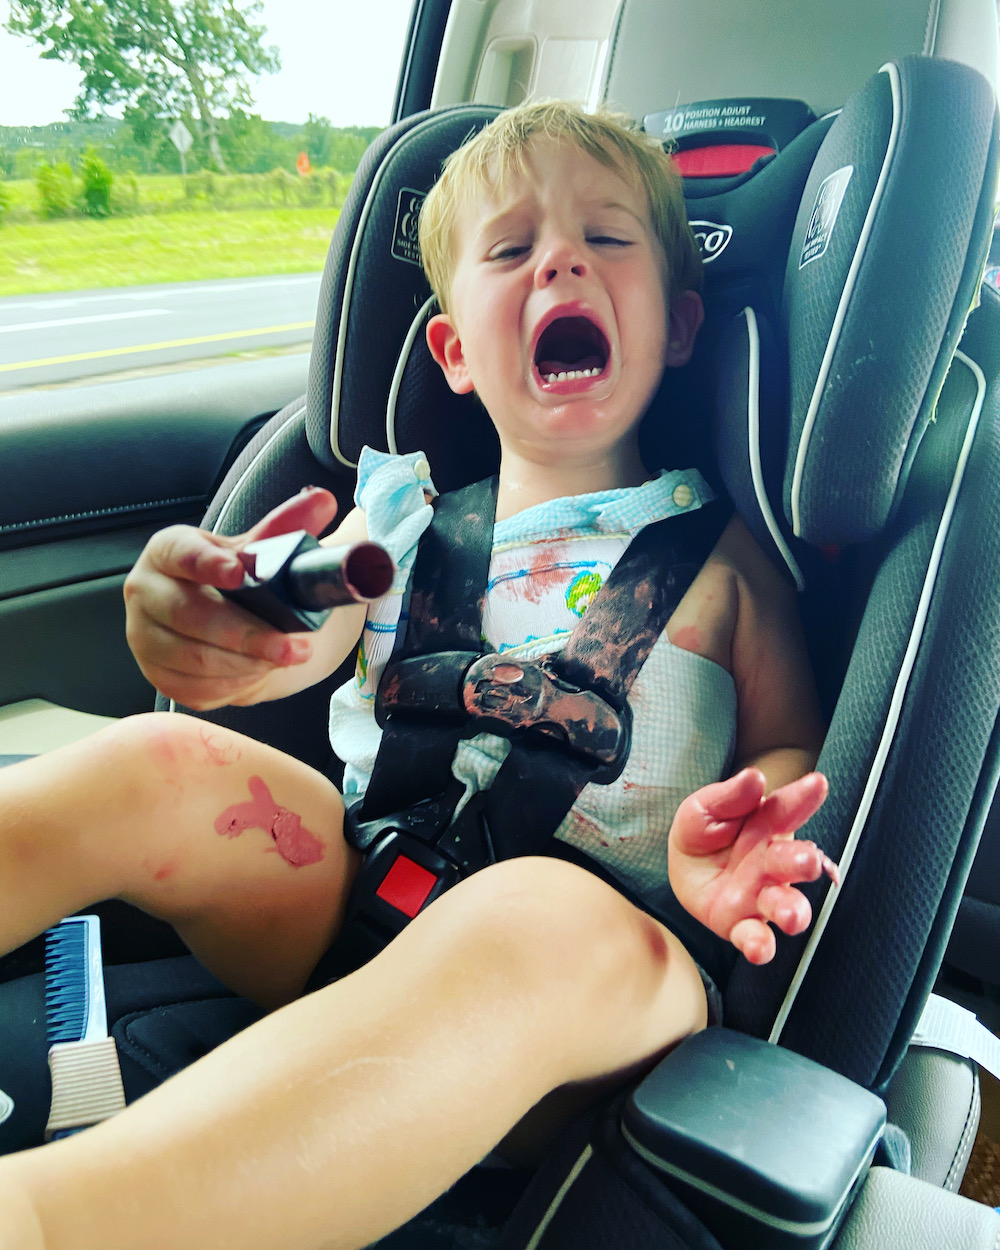 Lynn Smith's son cries in the car.